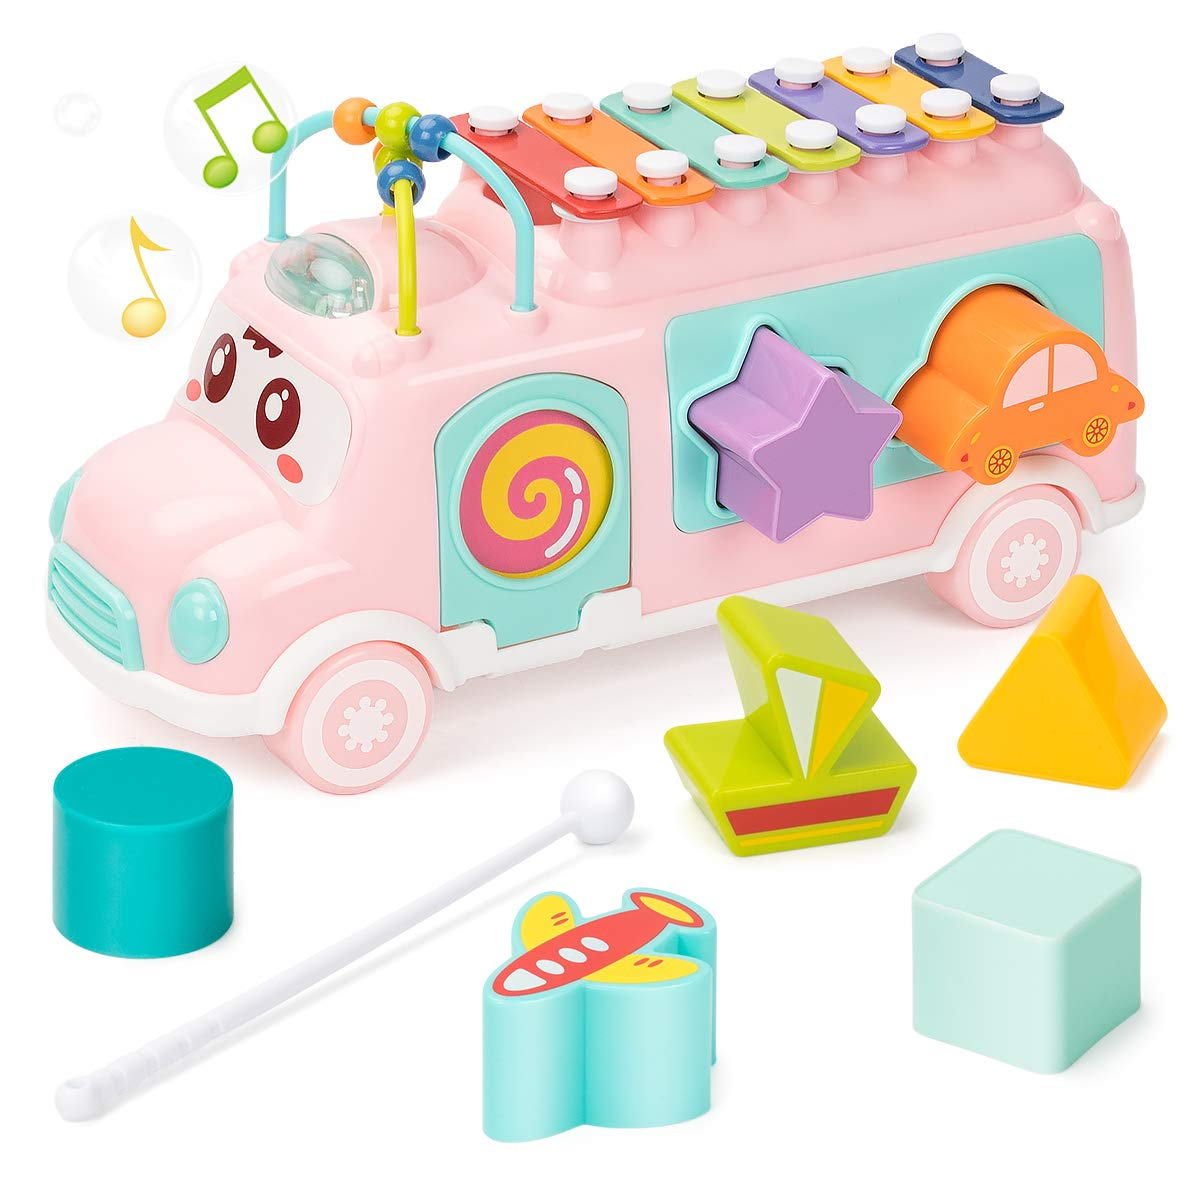 UNIH Infant Xylophone Toy - Shape Sorter Toy with Safe Mallets, Learning Educational Toys for Baby & Toddler, Push & Pull Music Toys for Over Baby 18 Months (Light Pink), Kids Birthday Gift